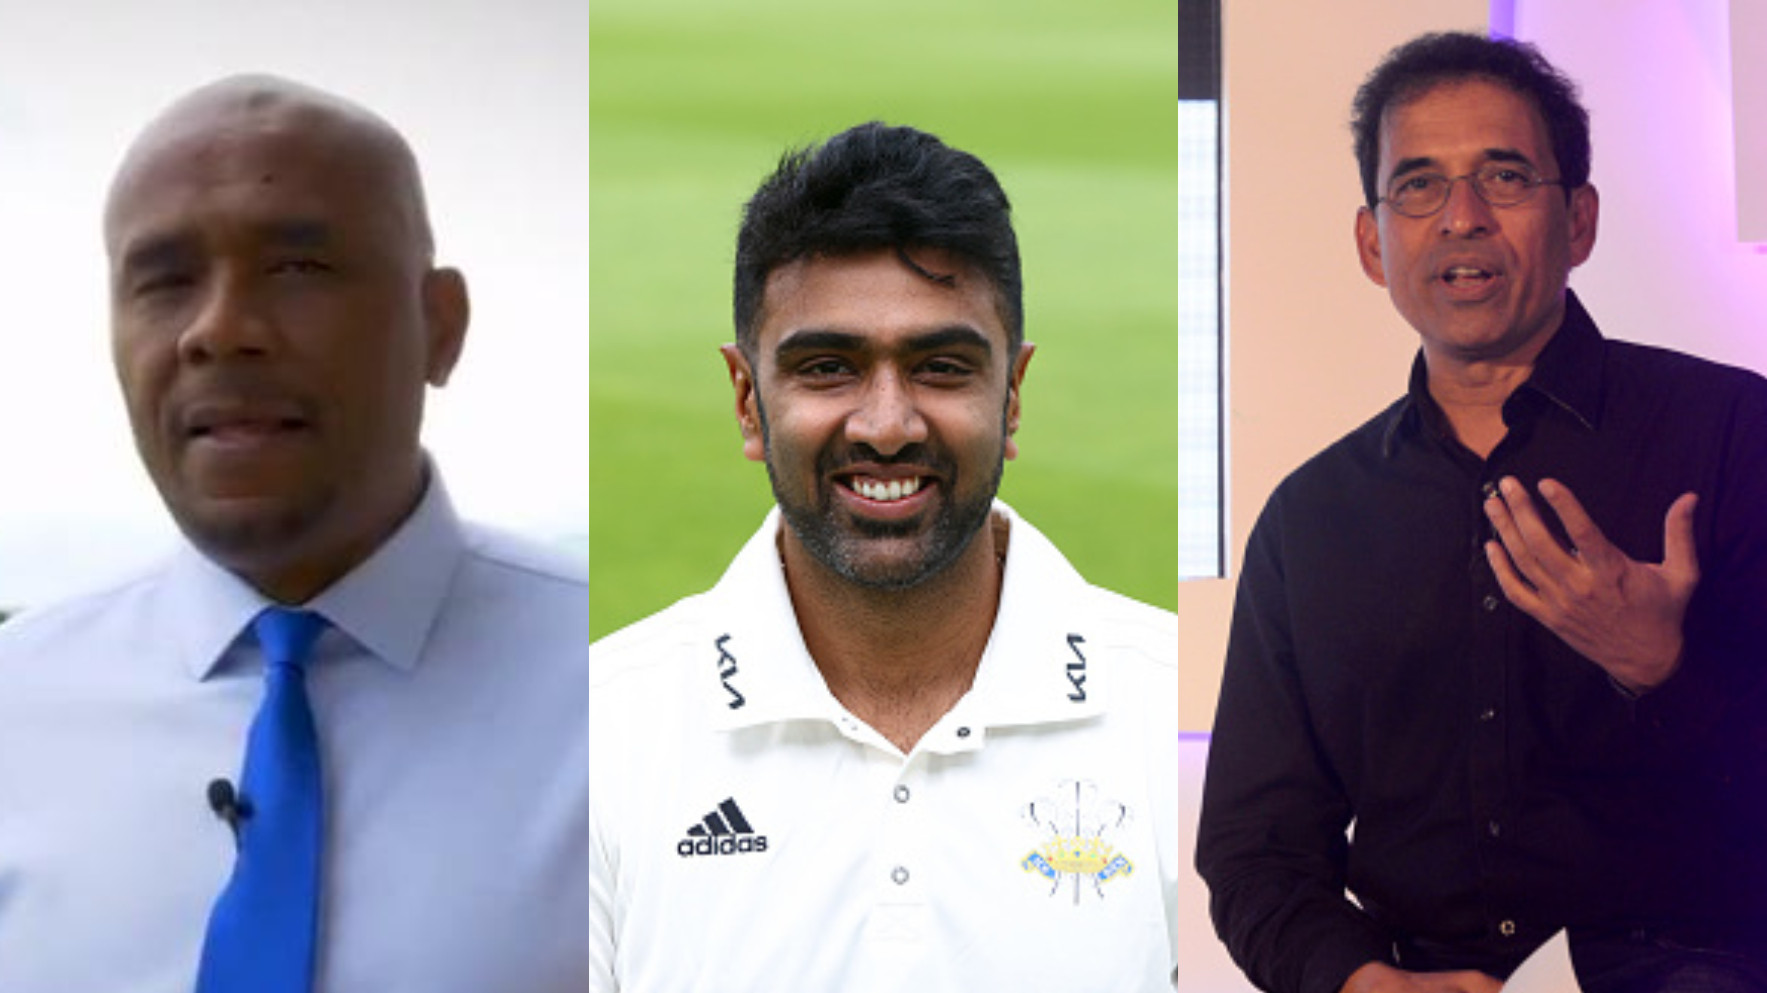 Cricket fraternity reacts to R Ashwin's 6/27 for Surrey against Somerset